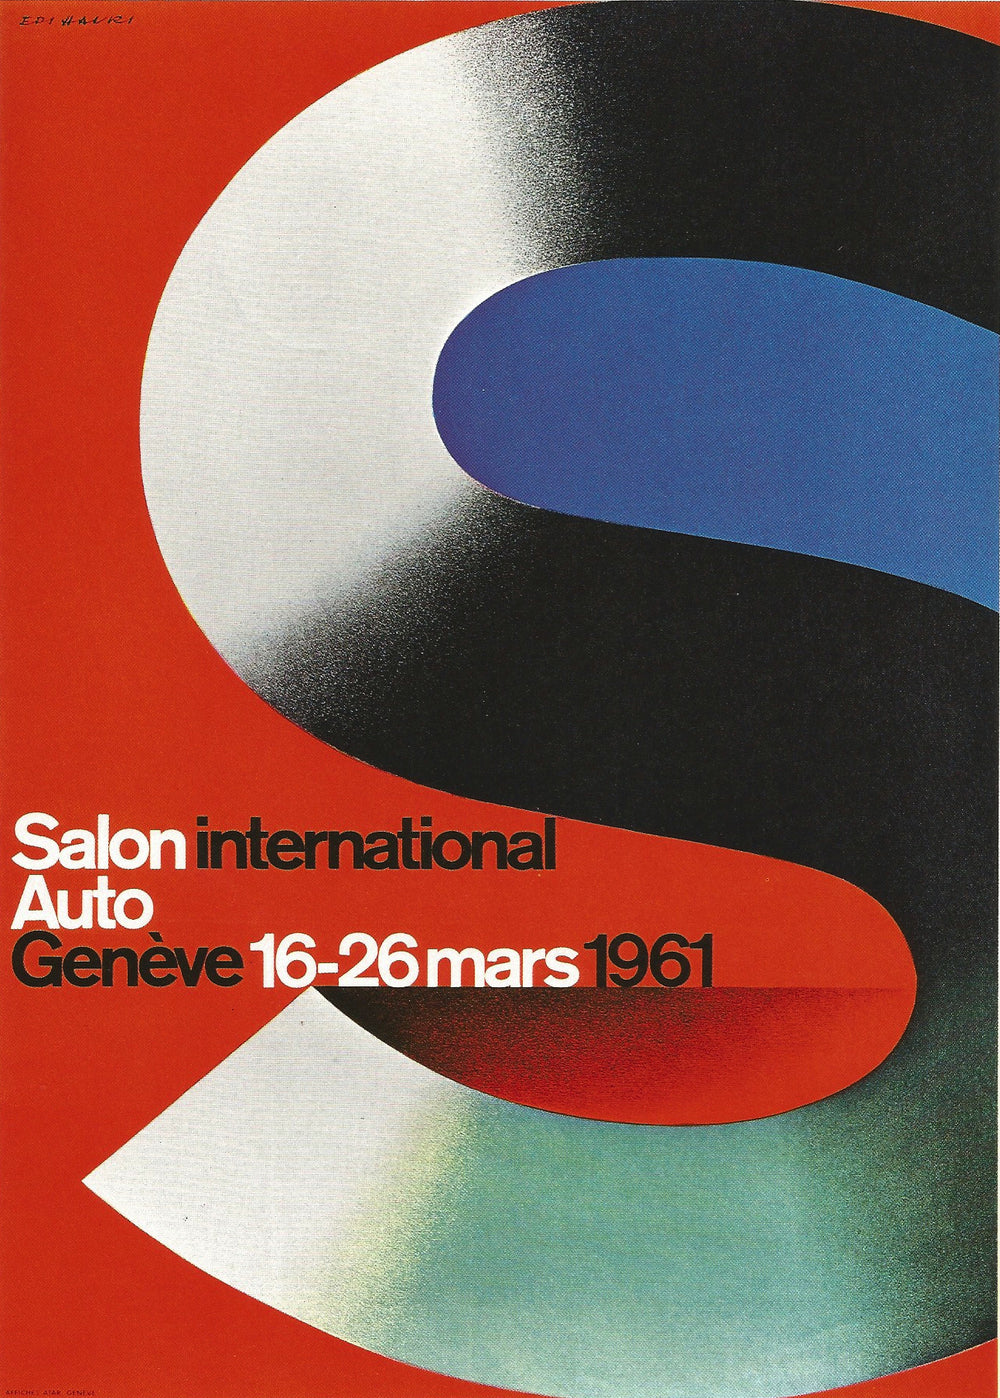 SALON INTERNATIONAL DE L'AUTO GENÈVE 1961 - appleboutique-com